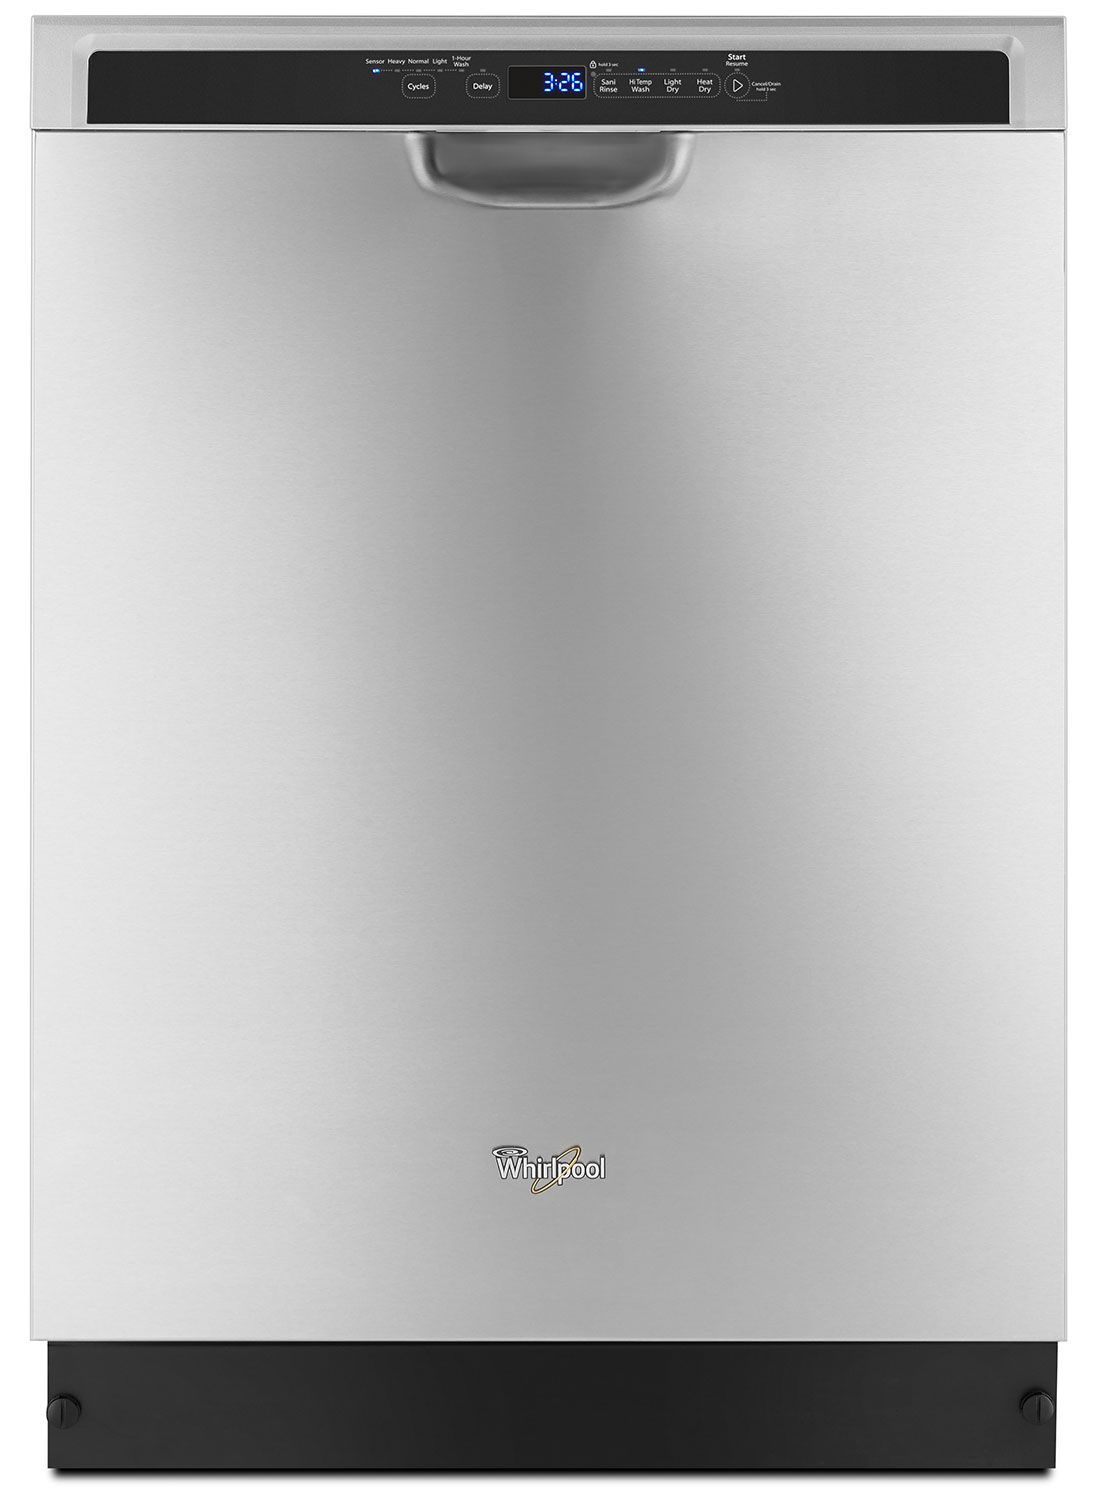 Whirlpool Stainless Steel Dishwasher - WDF560SAFM